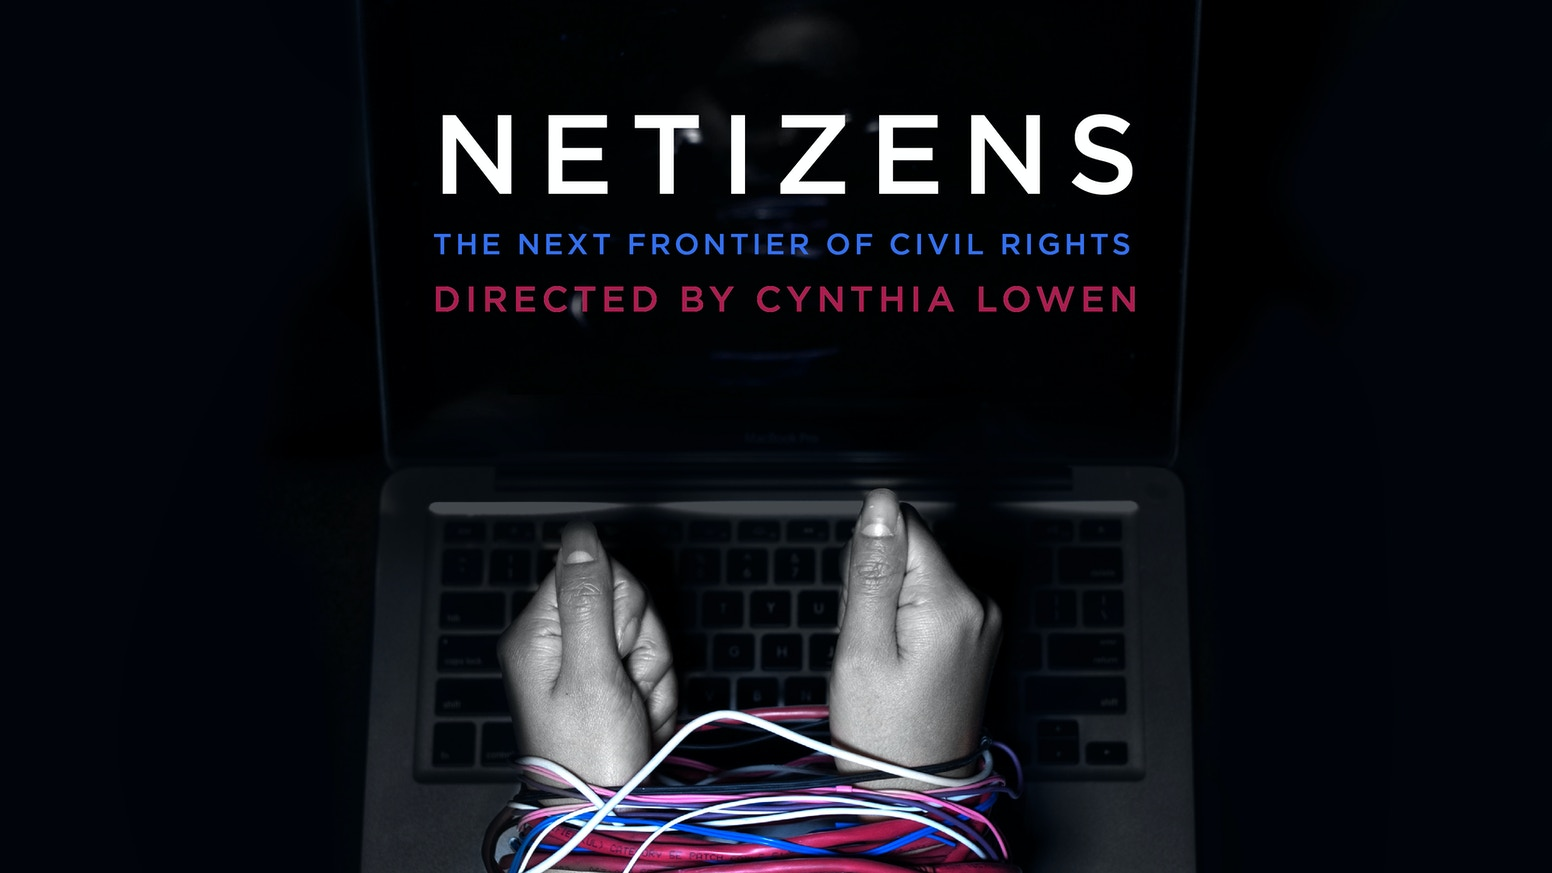 NETIZENS follows targets of online harassment as they confront digital abuse and strive for equality and justice online.